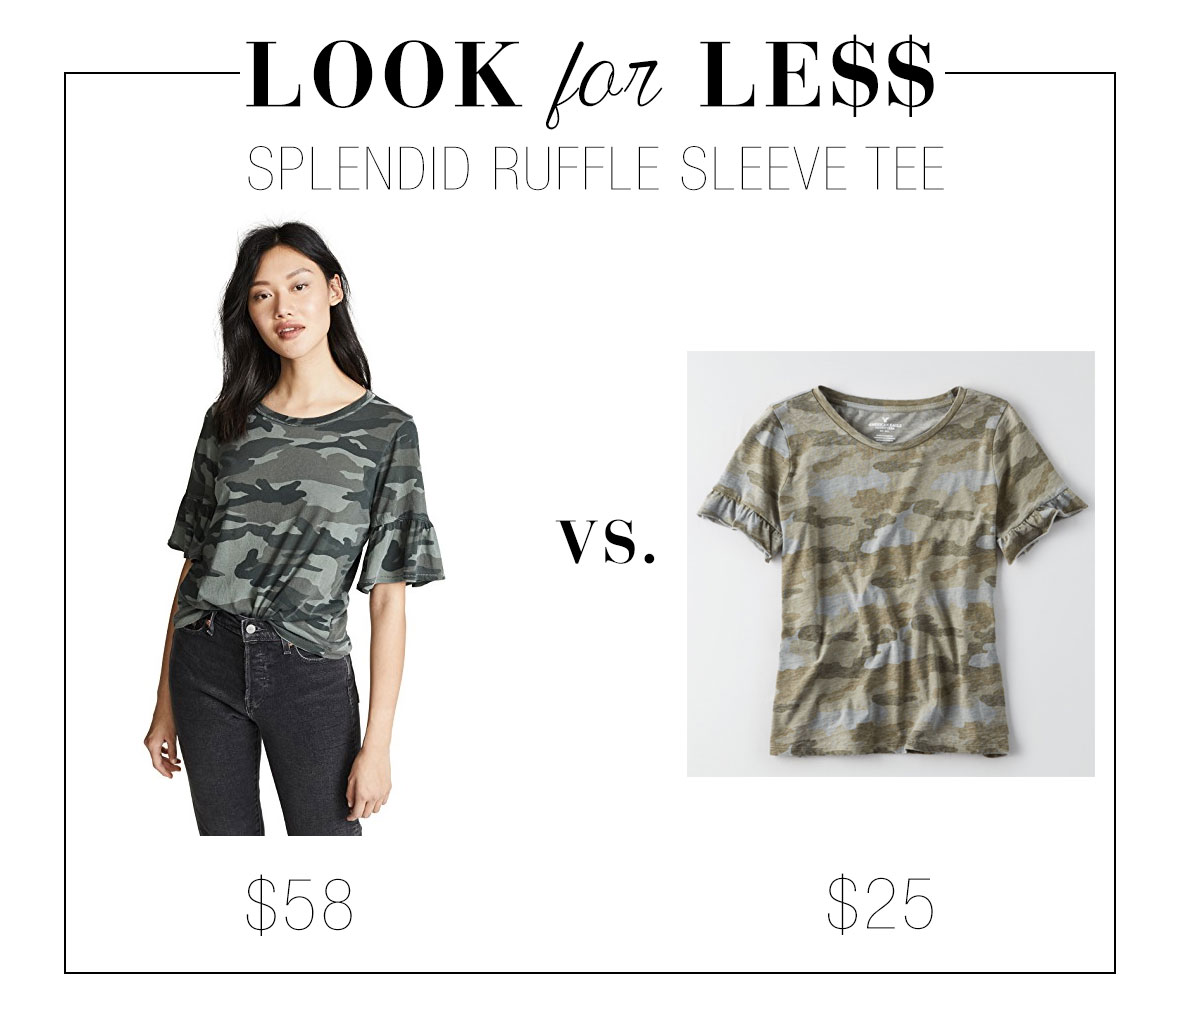 Splendid ruffle tee look for less